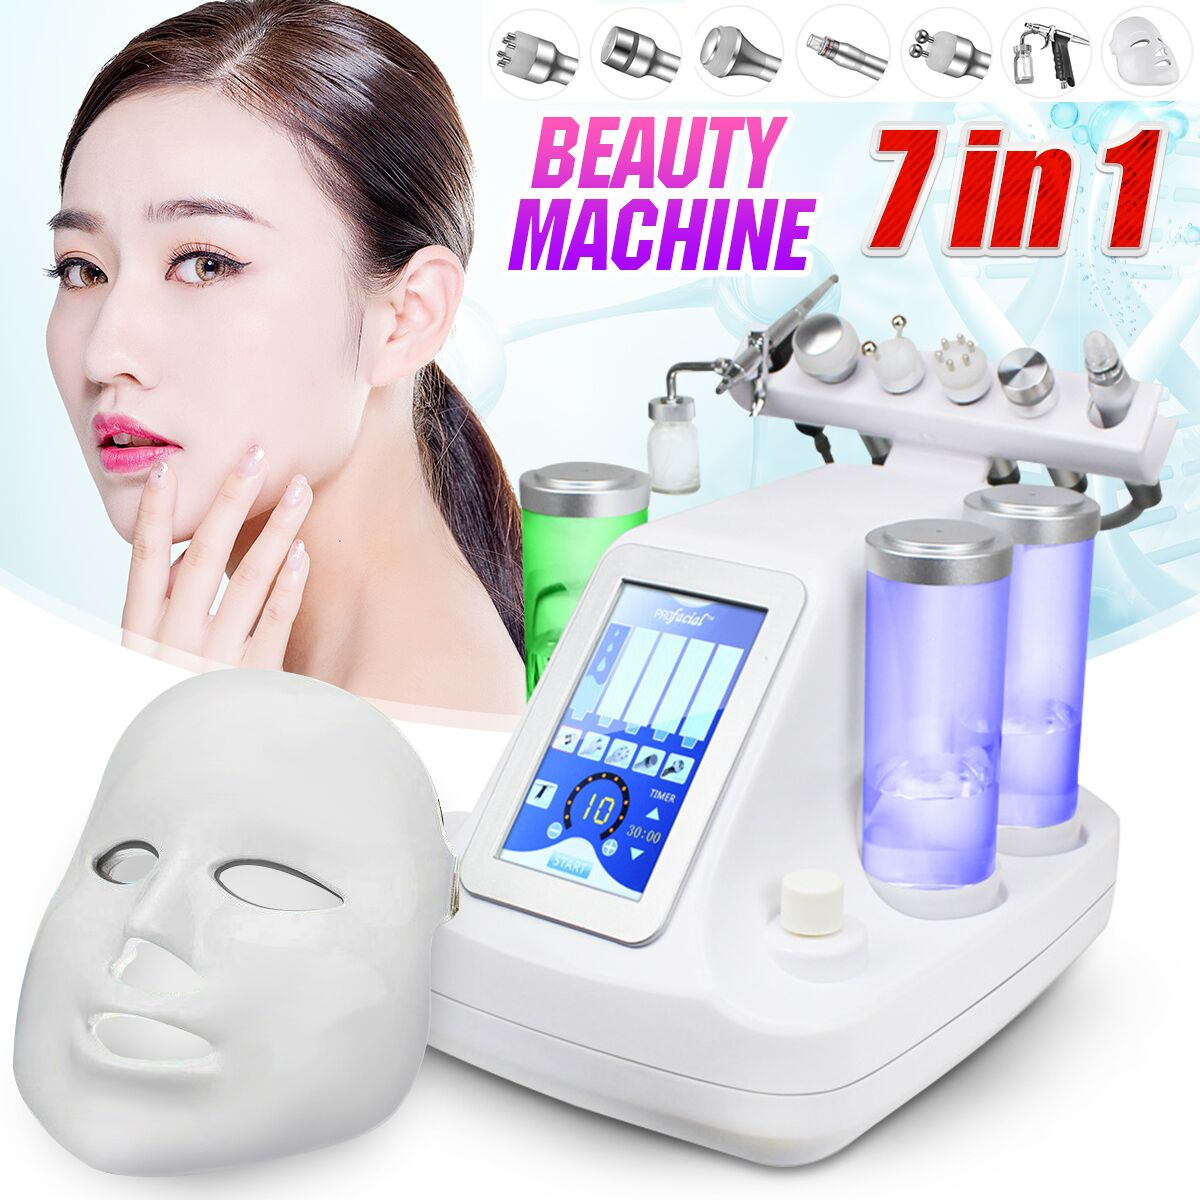 7 In 1 Dermabrasion Peeling Vacuum Cleaning Machine RF Water Oxygen Jet Spa Facial Skin Bio-lifting Beauty Peel Machine